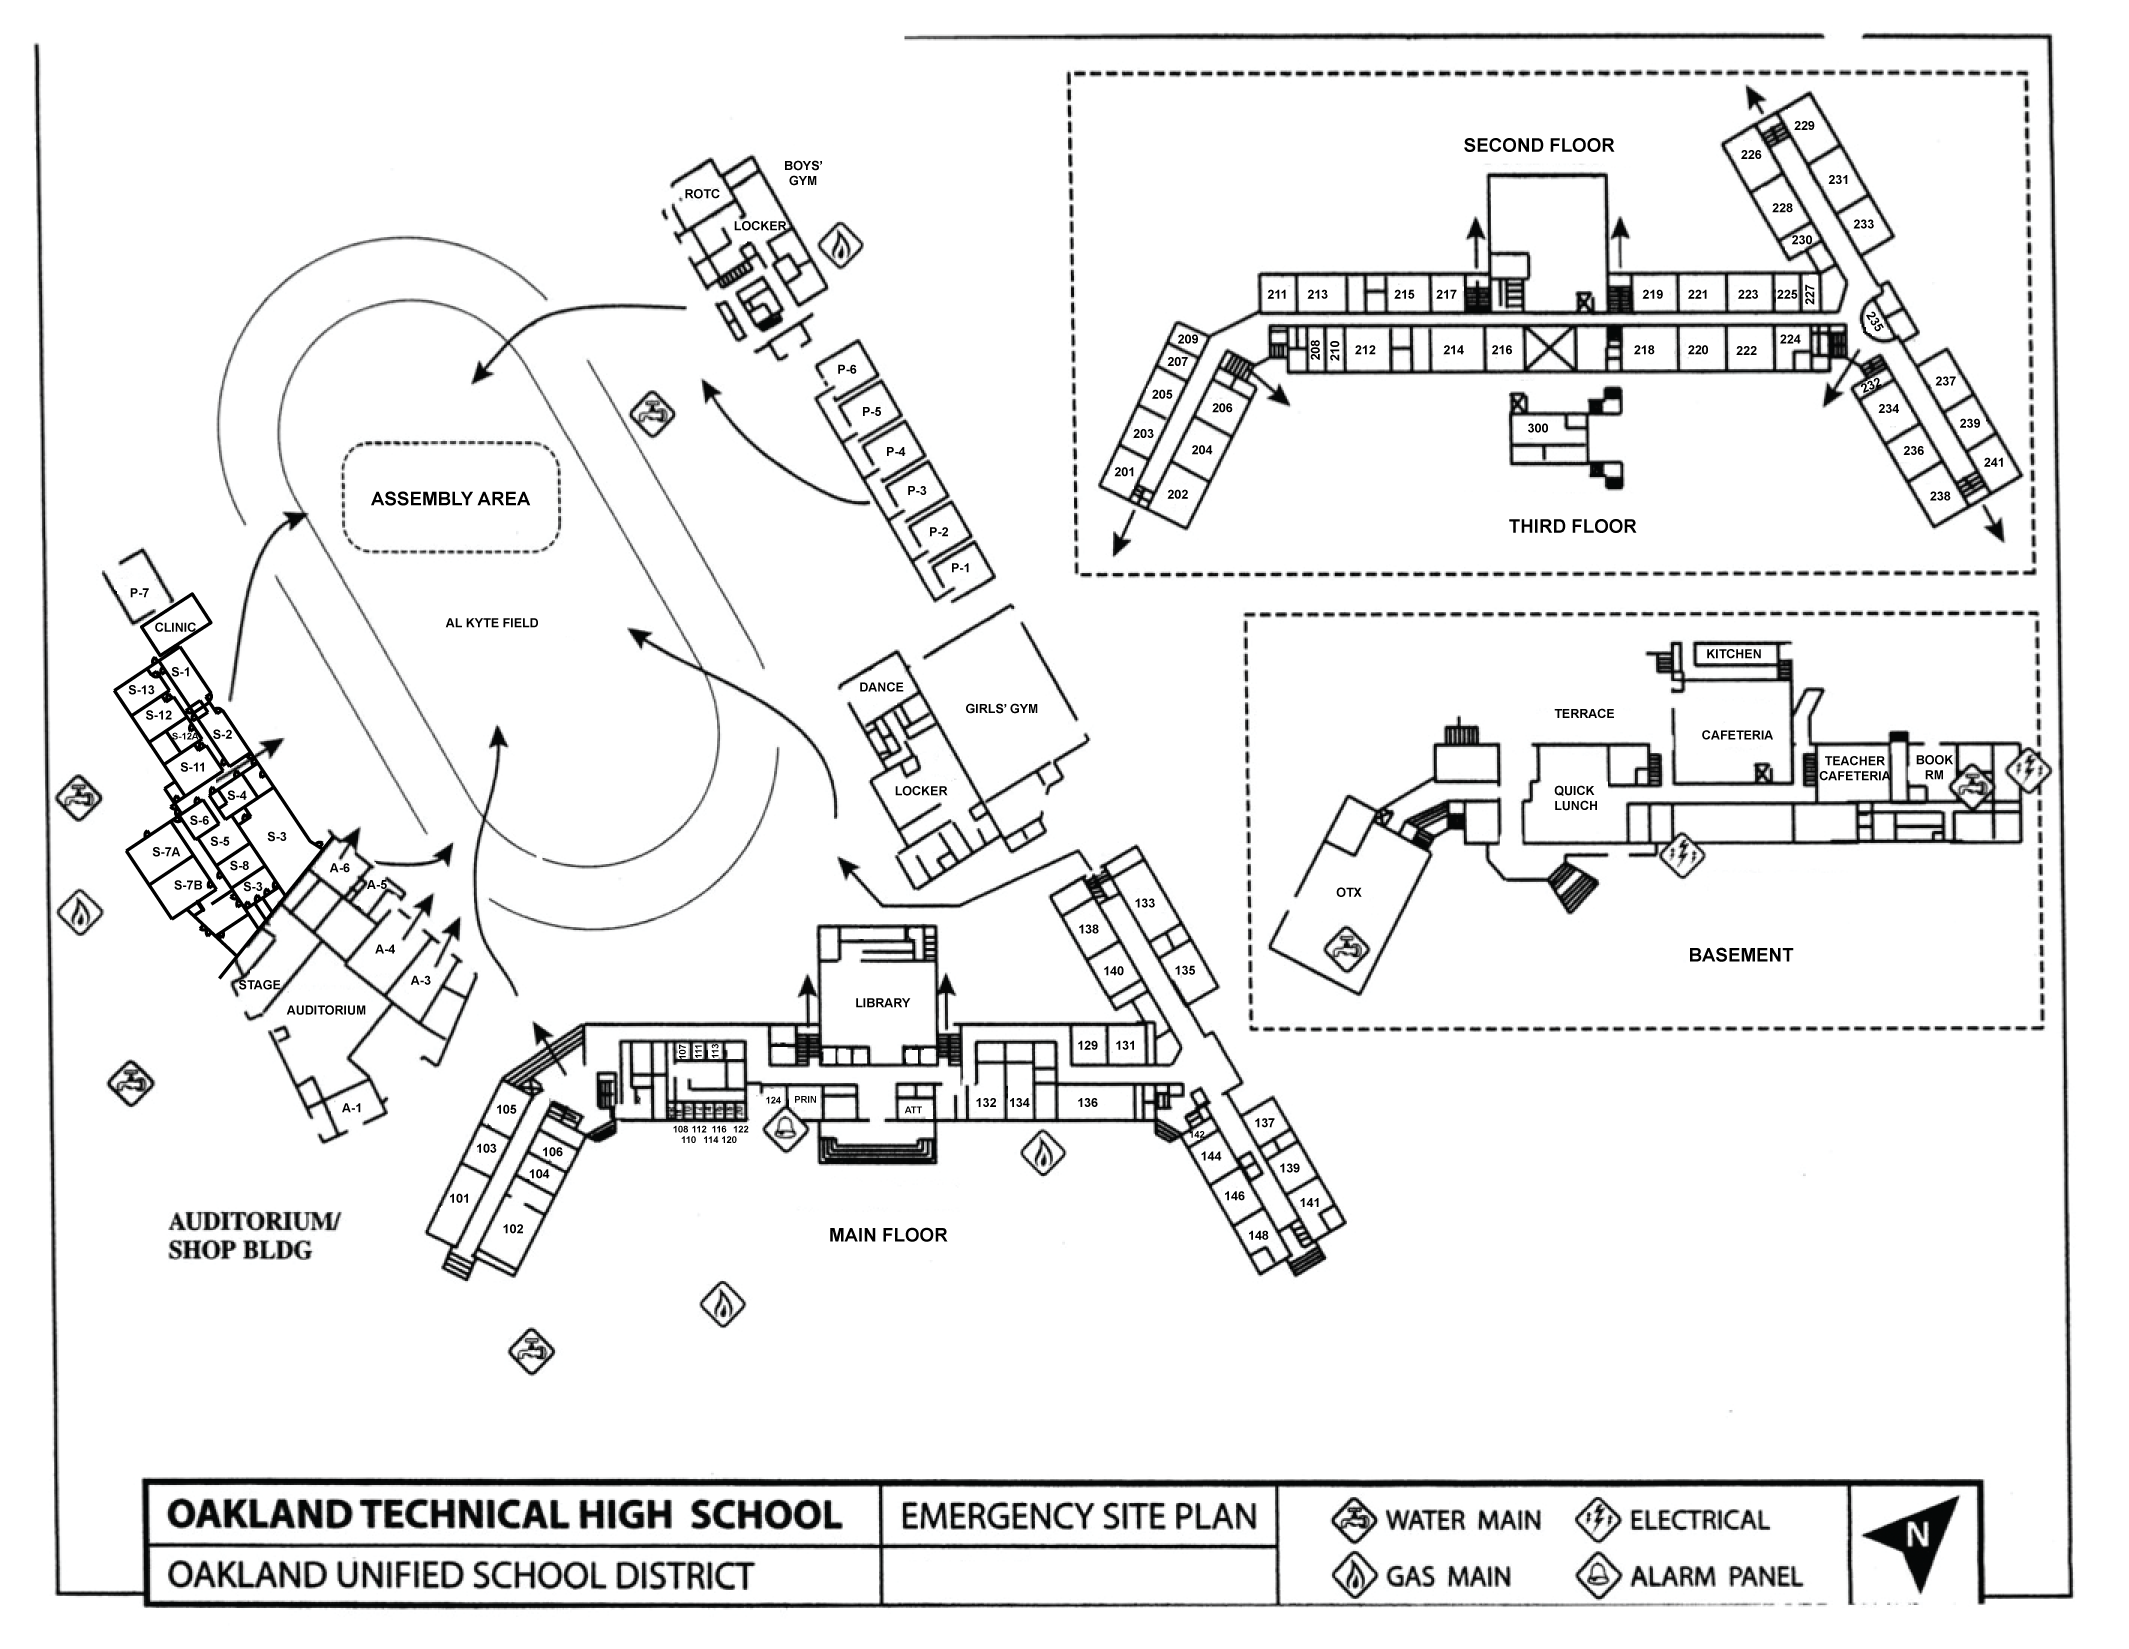 Map & Directions  Oakland Technical High School. Card Service Center Visa Fashion Dinner Dress. California Insurance Company. Account Manager Program Bee Caves Urgent Care. Collage Classes Online University Town Center. Online School For Adults Moving Washington Dc. Arizona Hemophilia Association. How To Make A Credit Card Online. Dodge Ram Bolt Pattern Hair Laser Removal Nyc